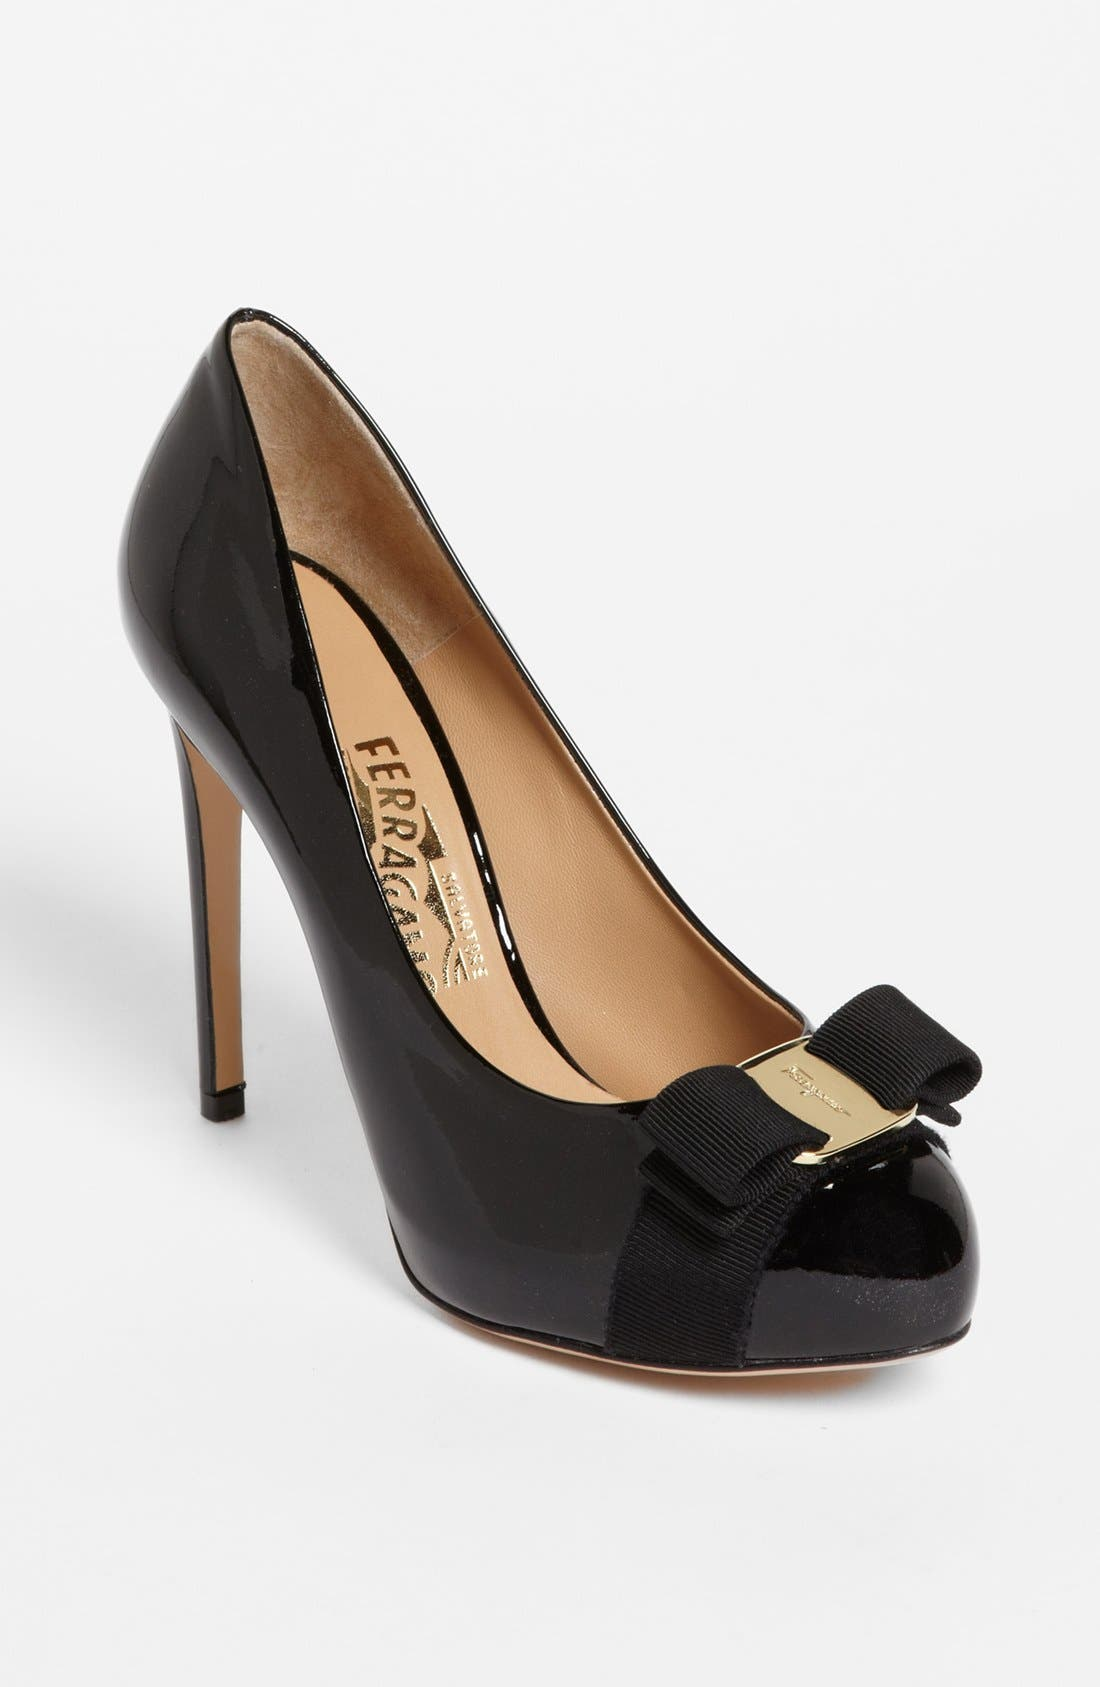 Main Image - Salvatore Ferragamo 'Rilly' Pump